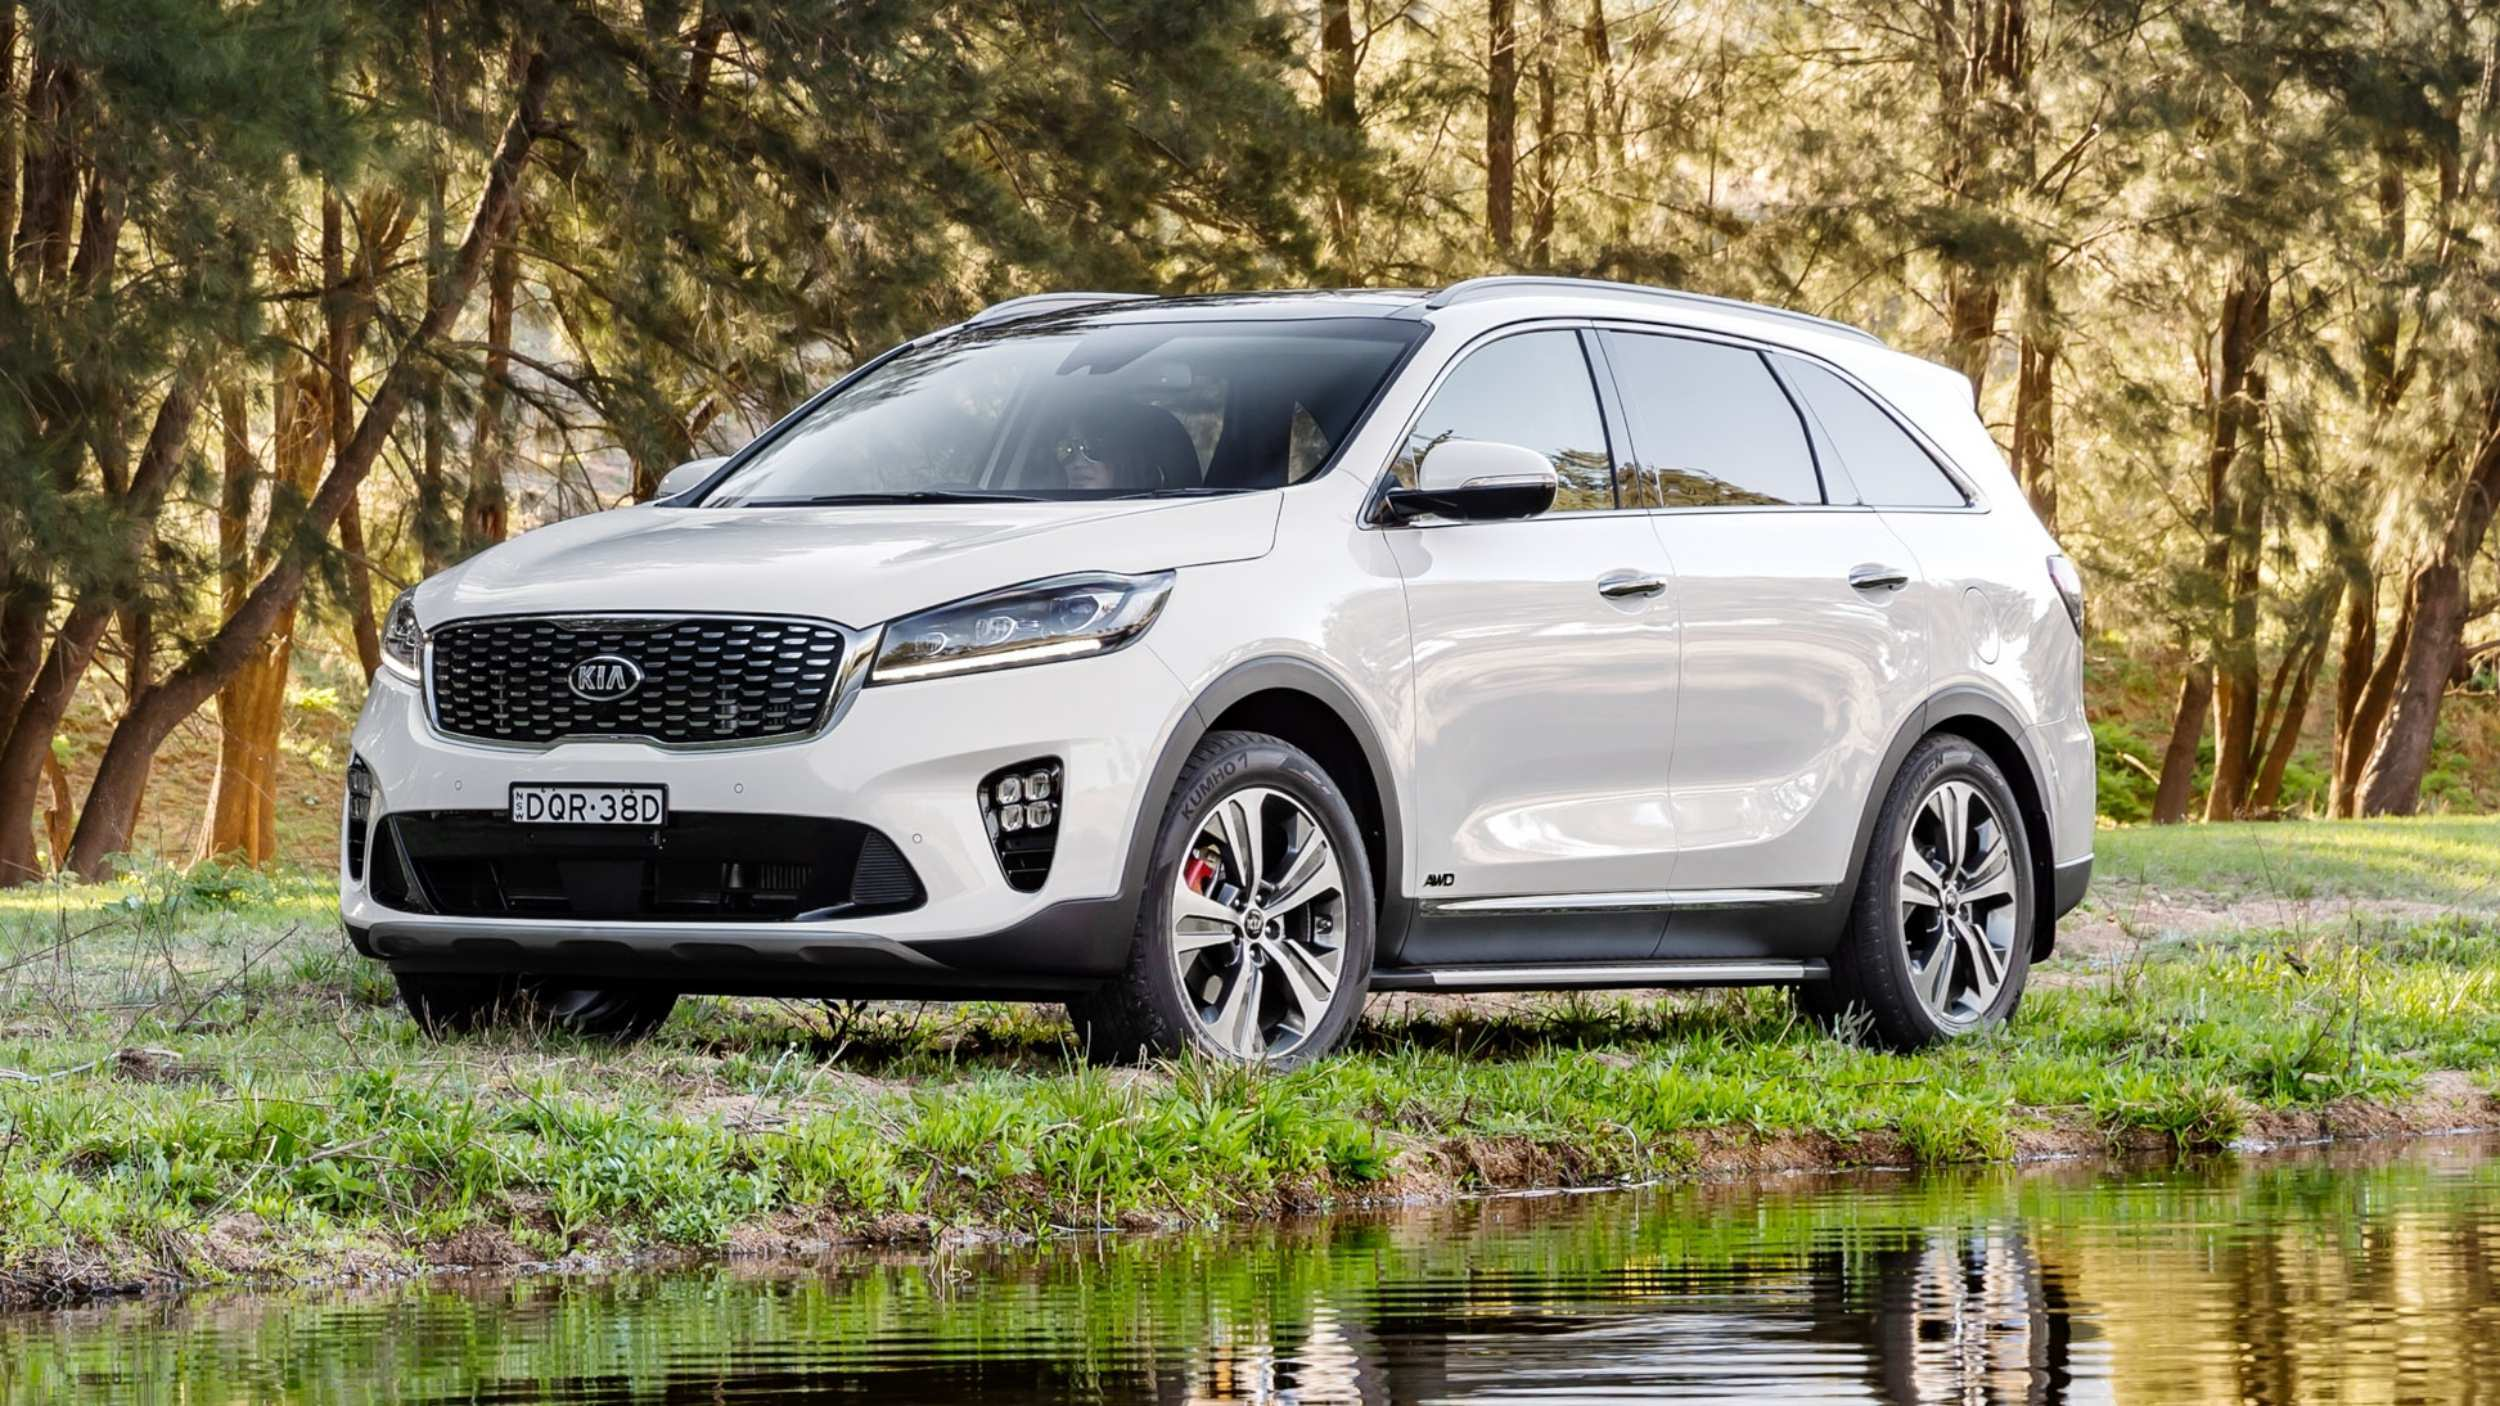 68 All New Kia Sorento 2020 Gt Line Photos with Kia Sorento 2020 Gt Line